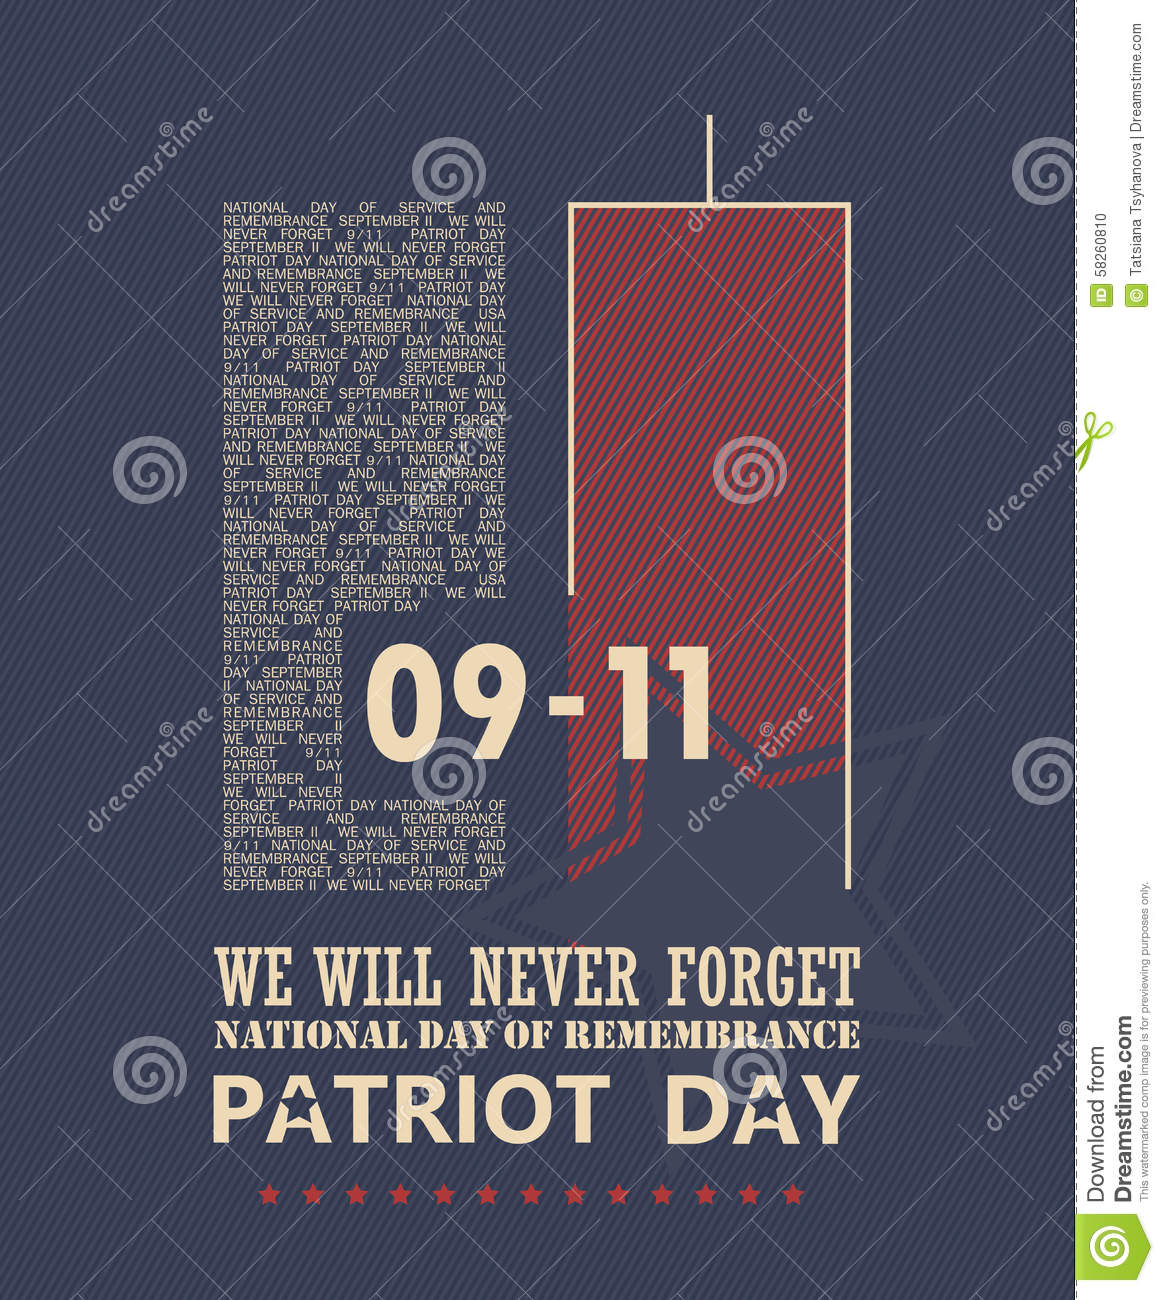 9/11 Patriot Day, Never Forget. Stock Vector.